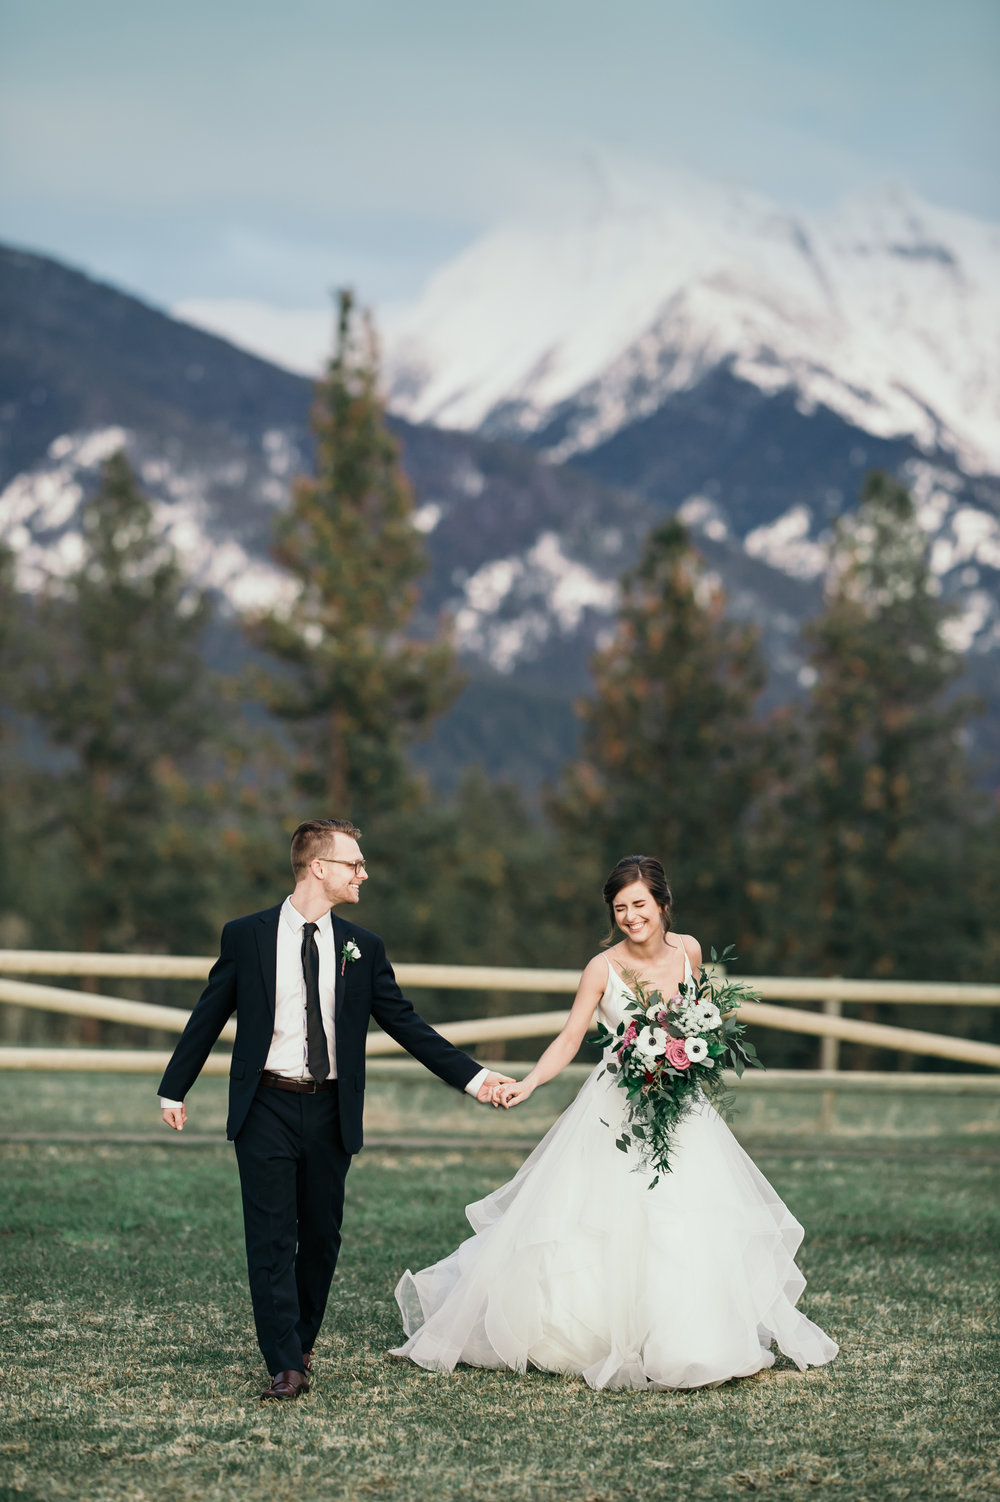 Jewel Tone Wedding Styled Shoot_Silver Knot_Montana Wedding Planner_Montana Wedding Photographer_Montana Wedding Videography_Honeybee Weddings-1463.jpg